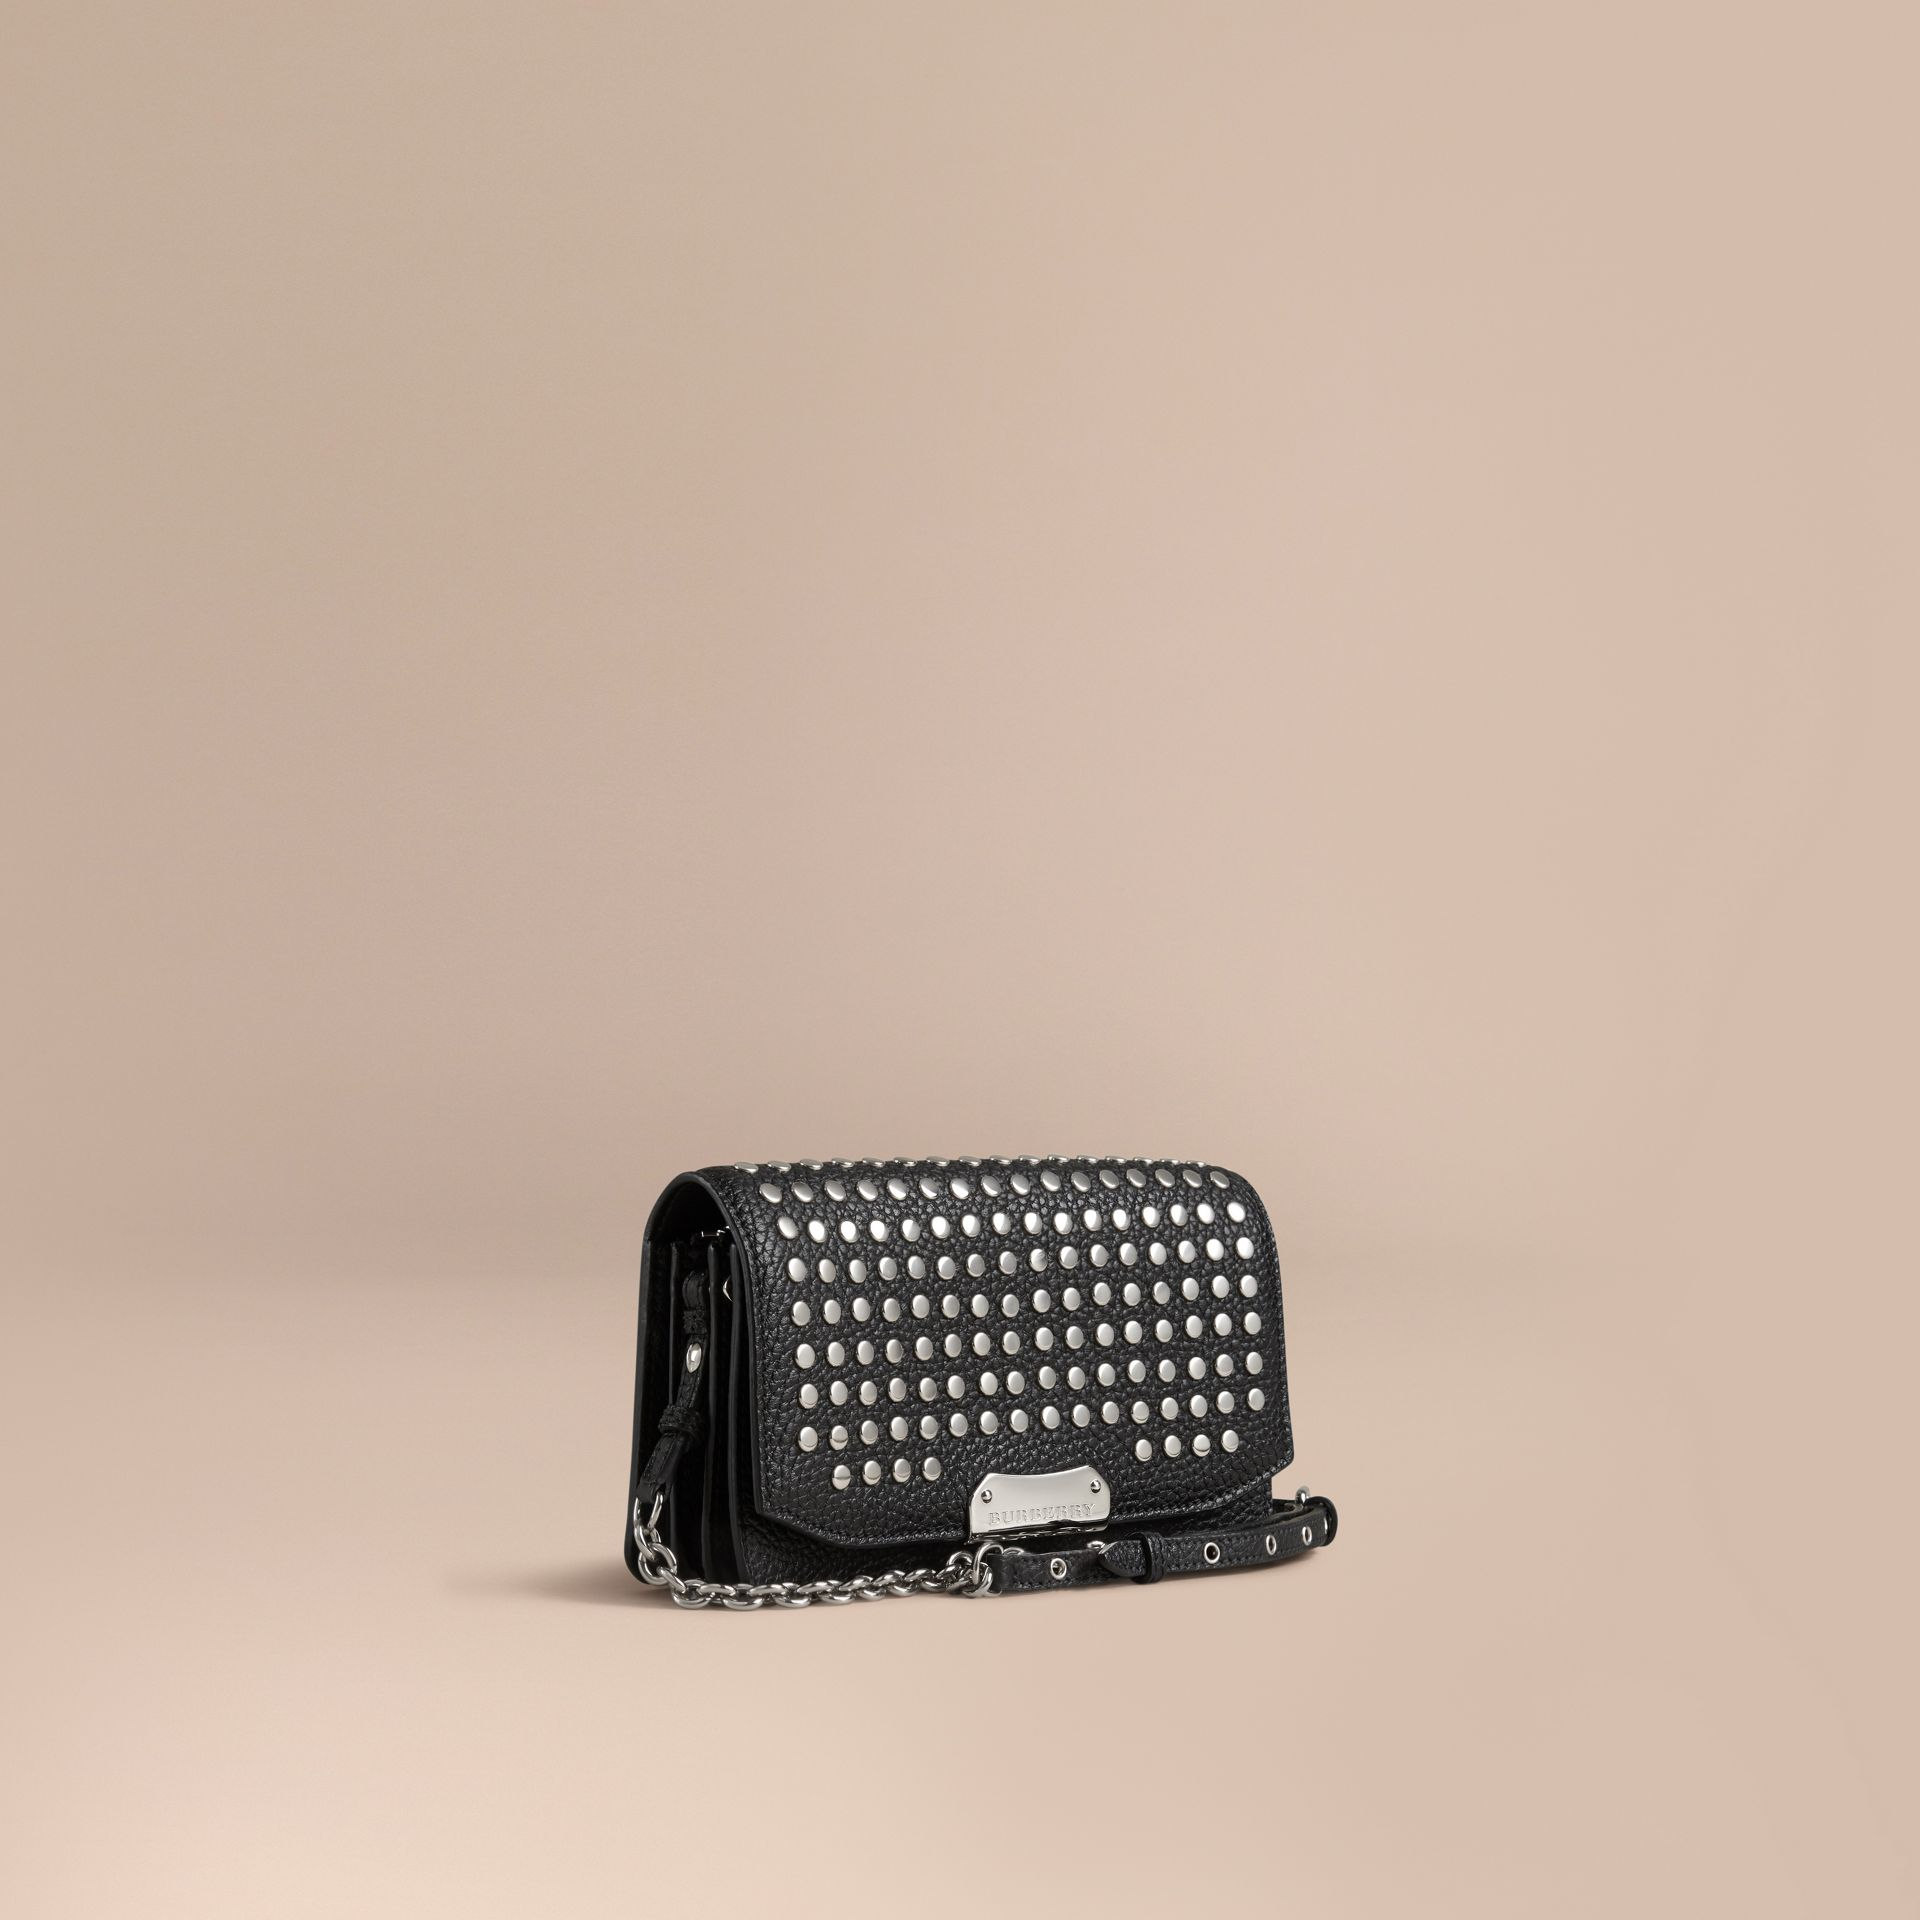 Black Studded Leather Clutch Bag with Chain - gallery image 1